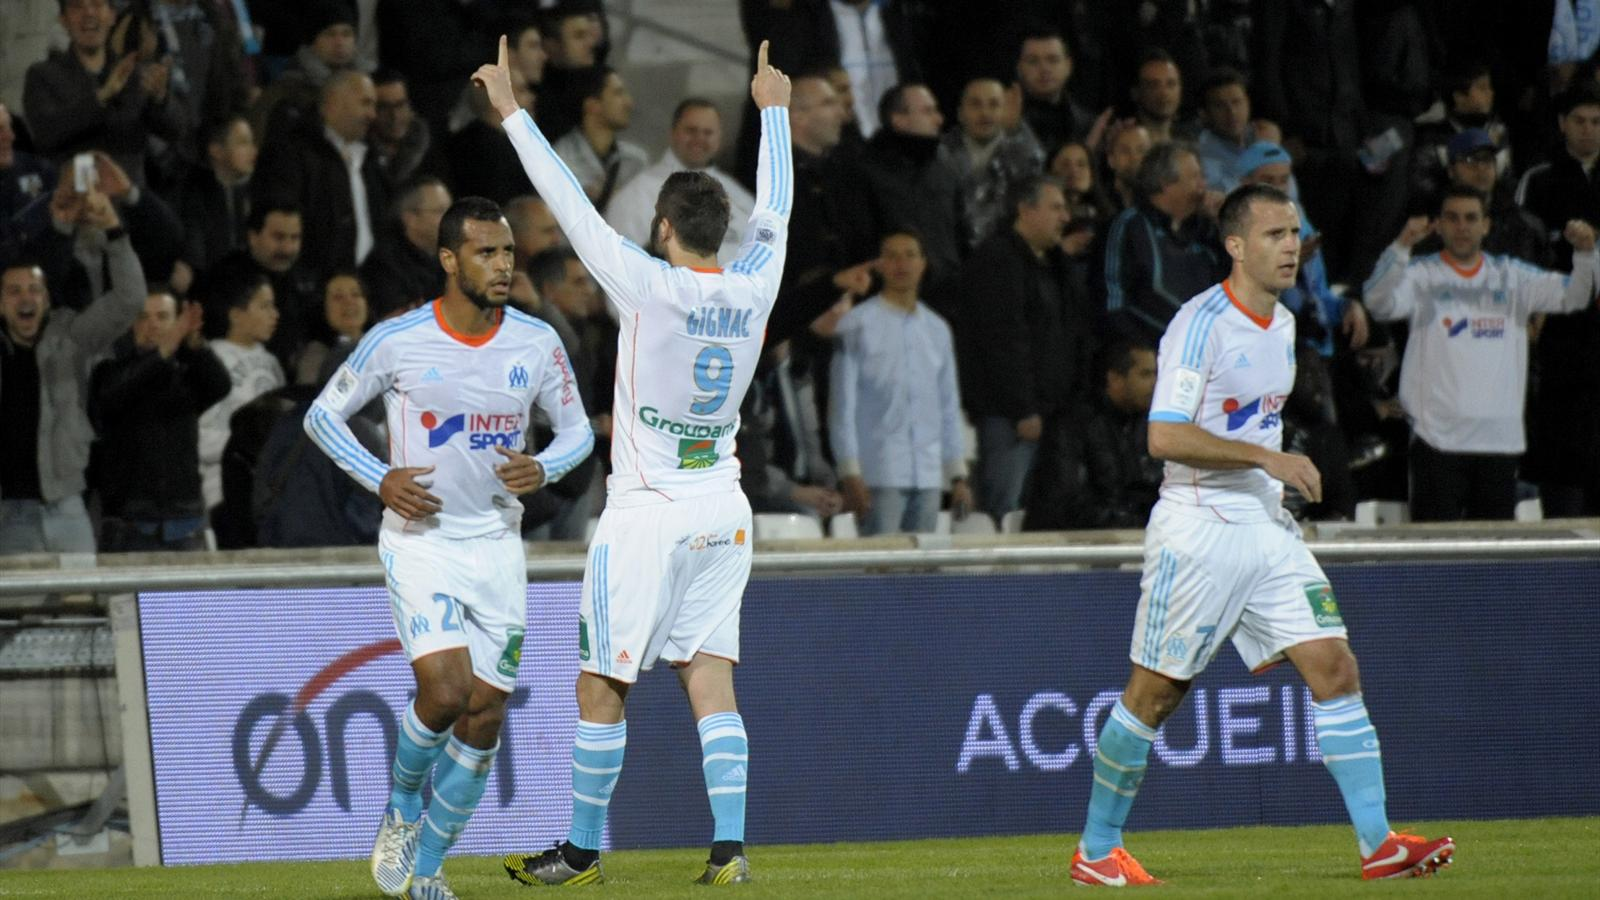 Match Olympique de Marseille (OM) vs Girondins de Bordeaux en direct live streaming